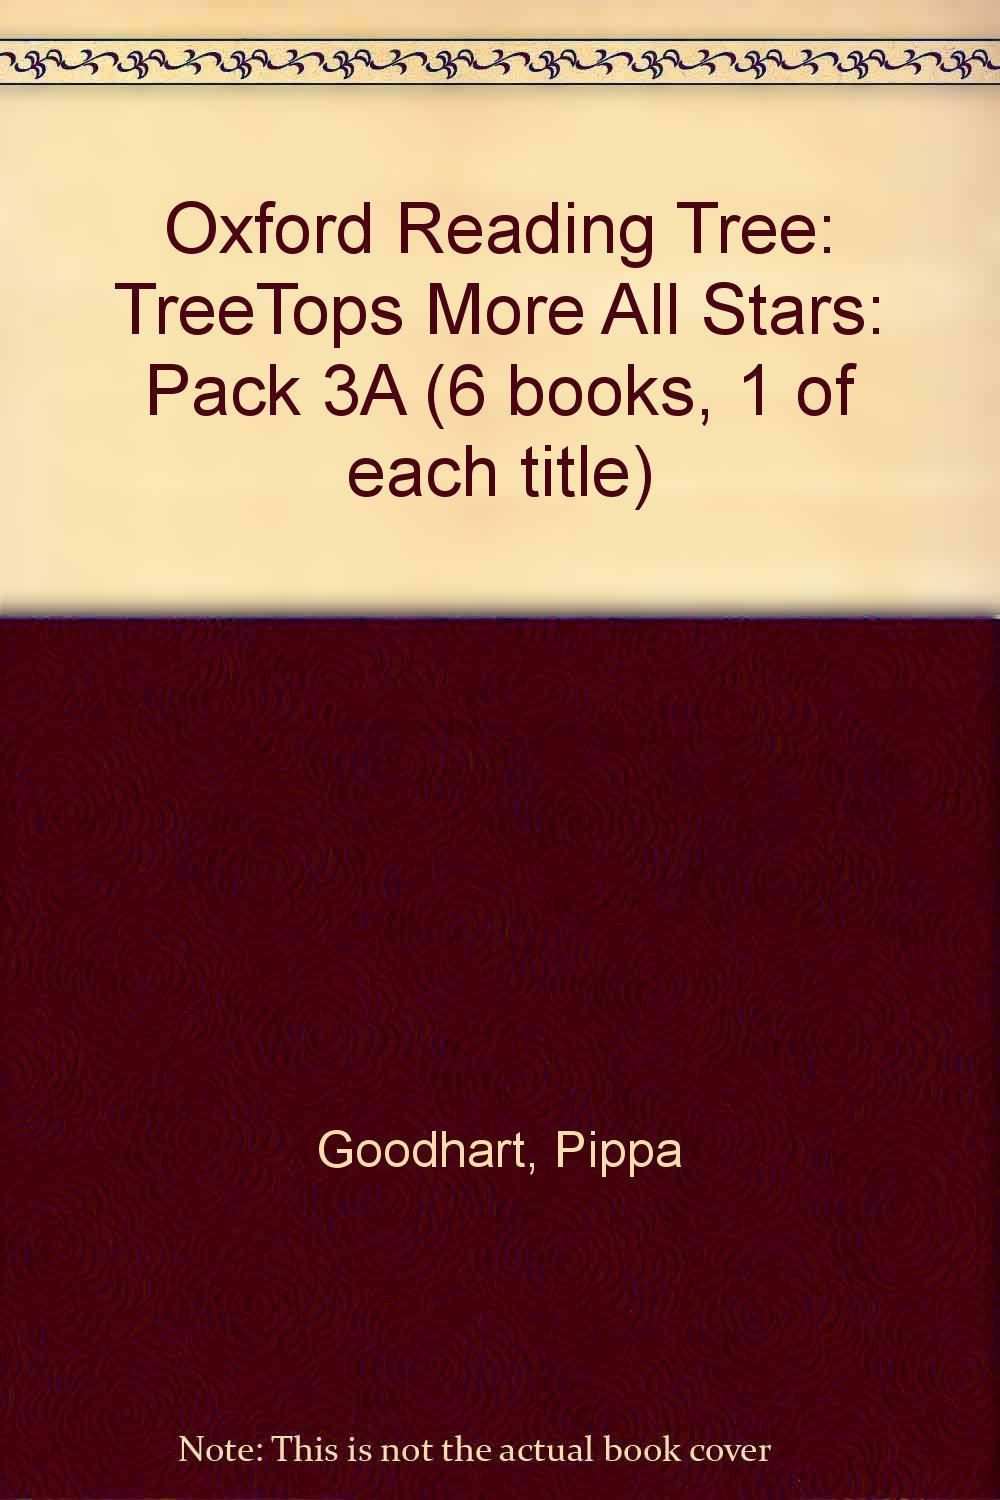 Oxford Reading Tree: TreeTops More All Stars: Pack 3A (6 books, 1 of each title) ebook